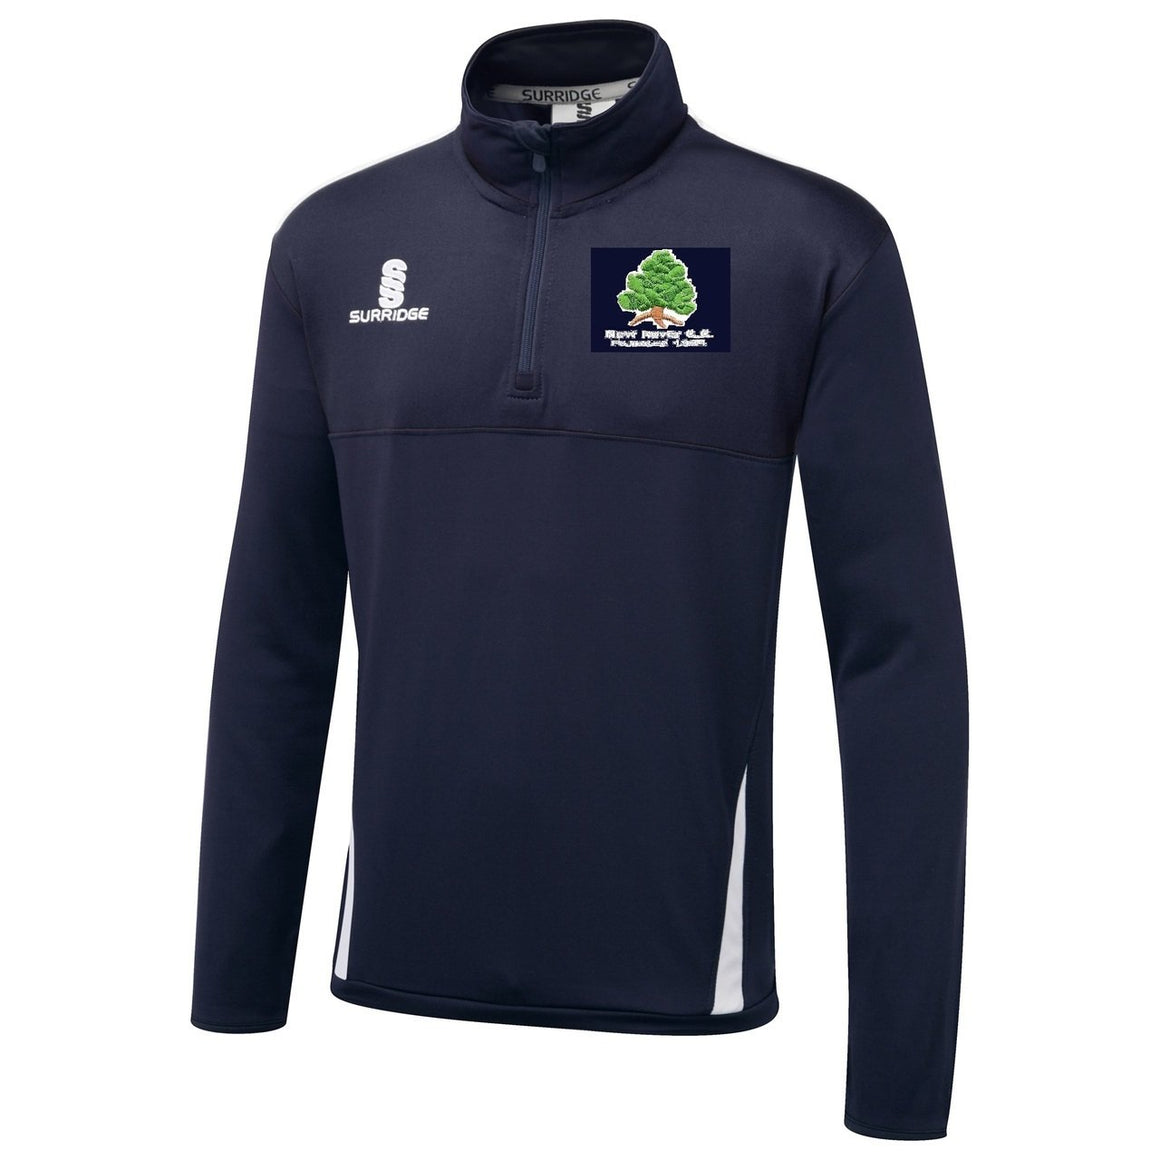 New Rover CC Blade Performance Sweatshirt